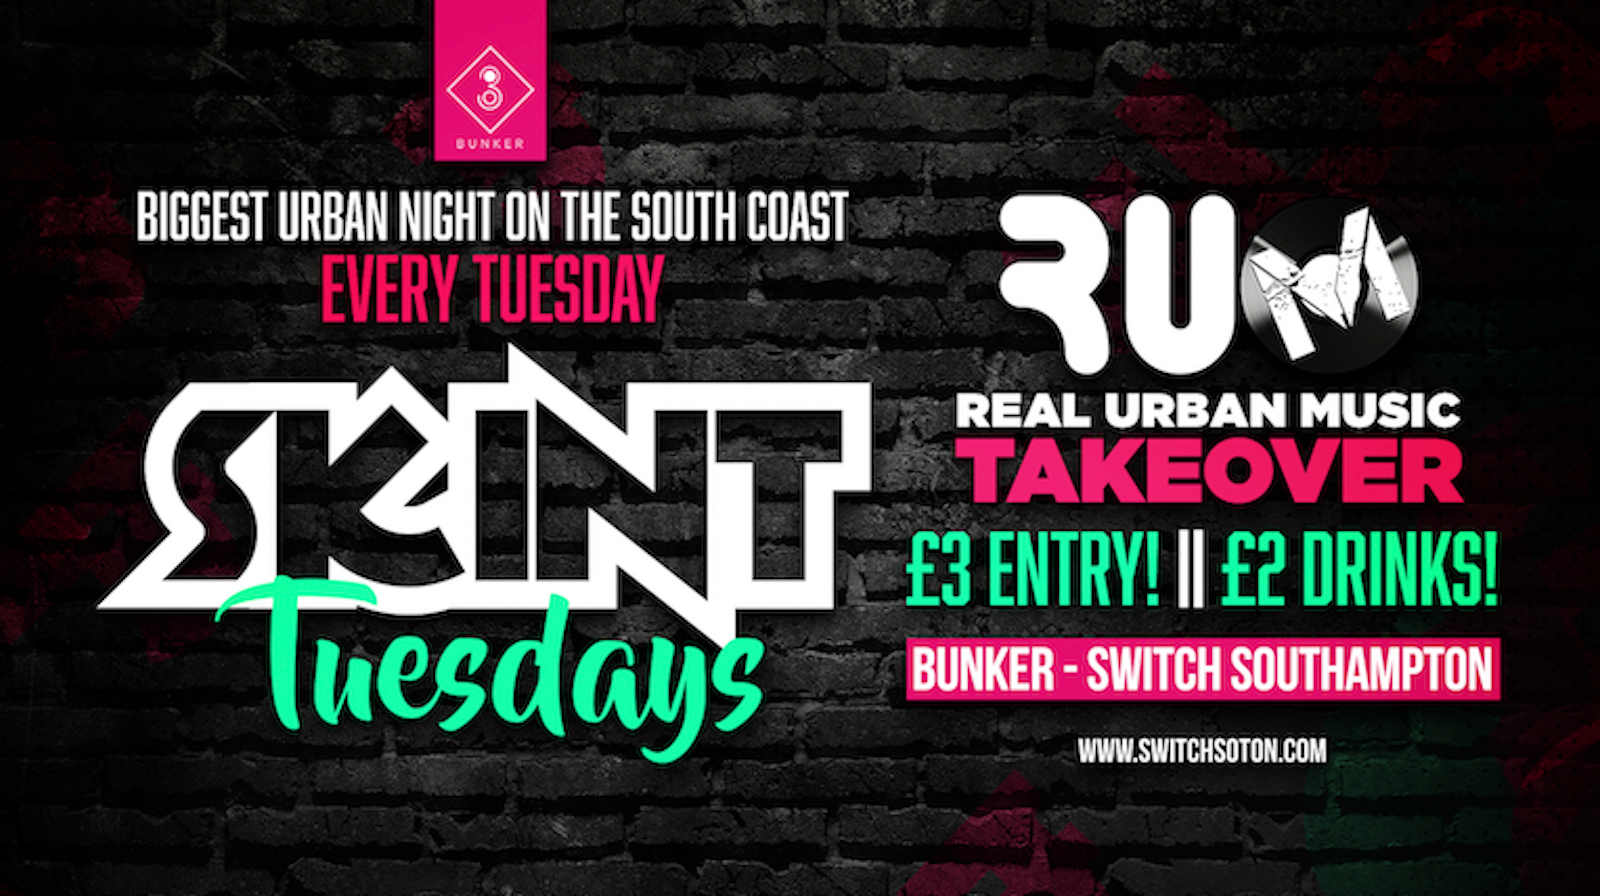 Skint Bunker • RUM Takeover All Things Urban • Every Tuesday